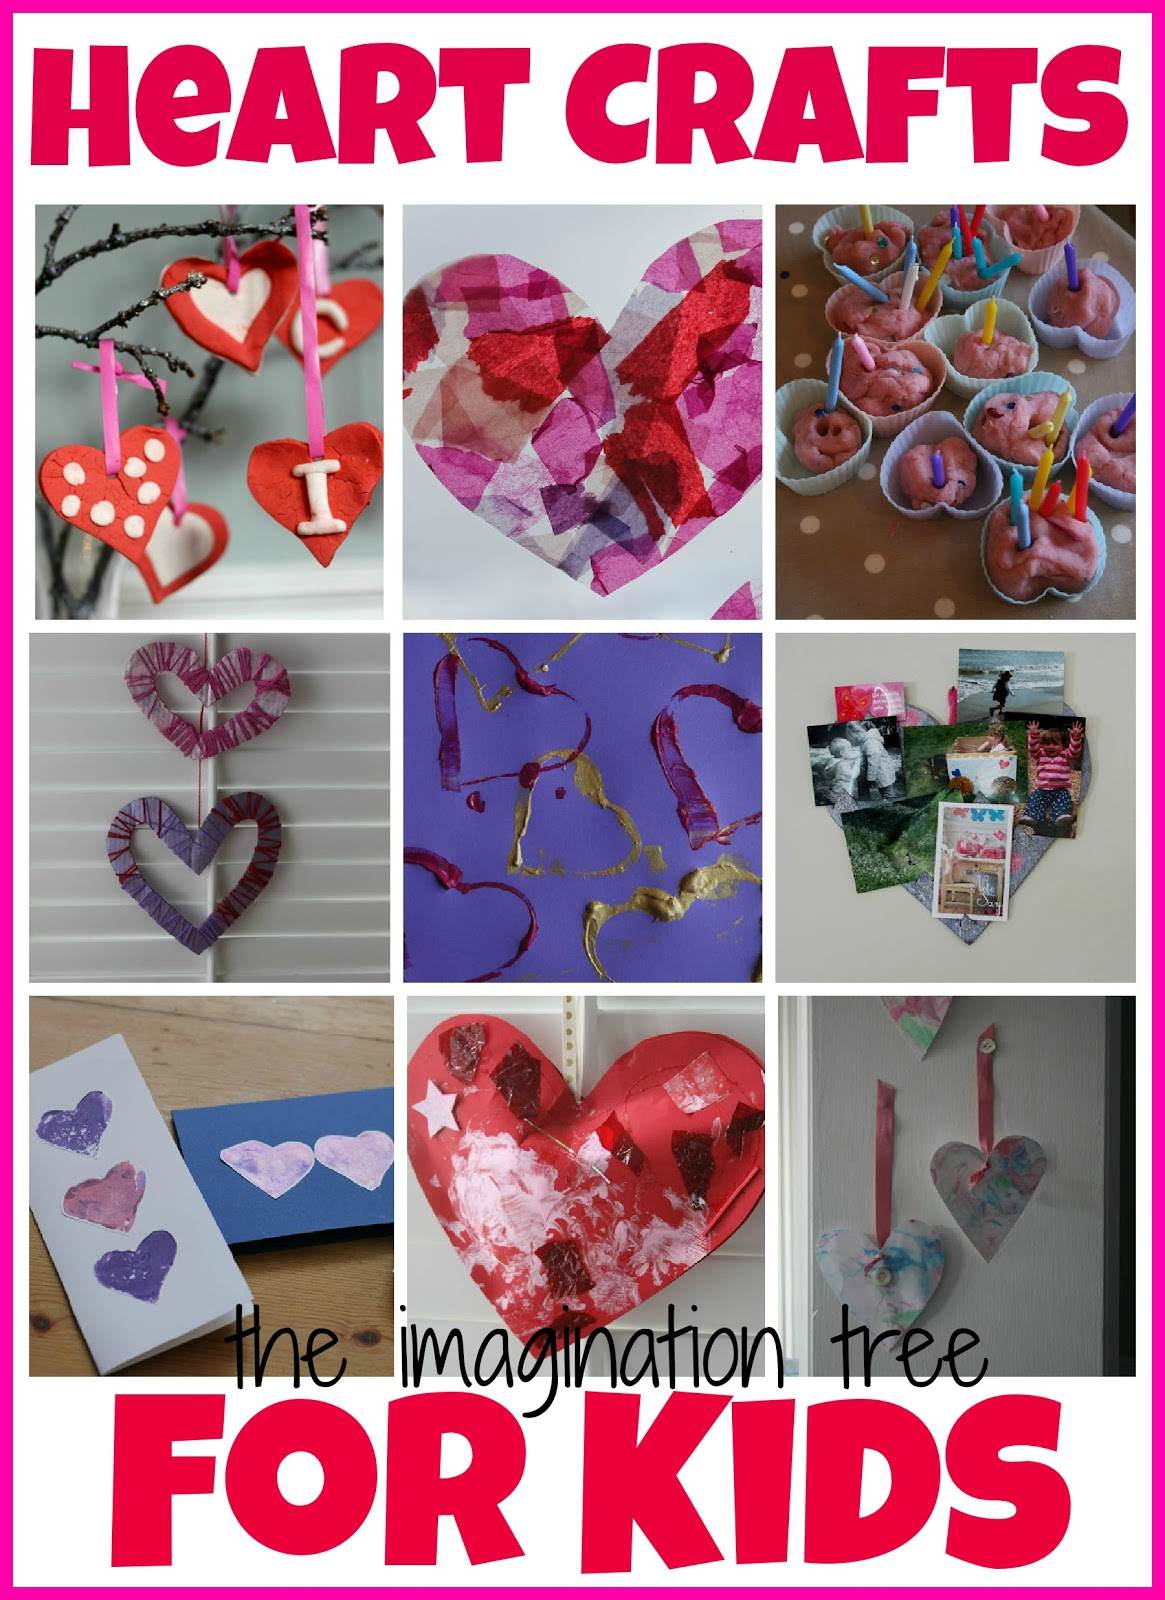 Valentiness Day Heart Crafts and Activities for Kids Crafts For Kids Ages 8-12 Printables